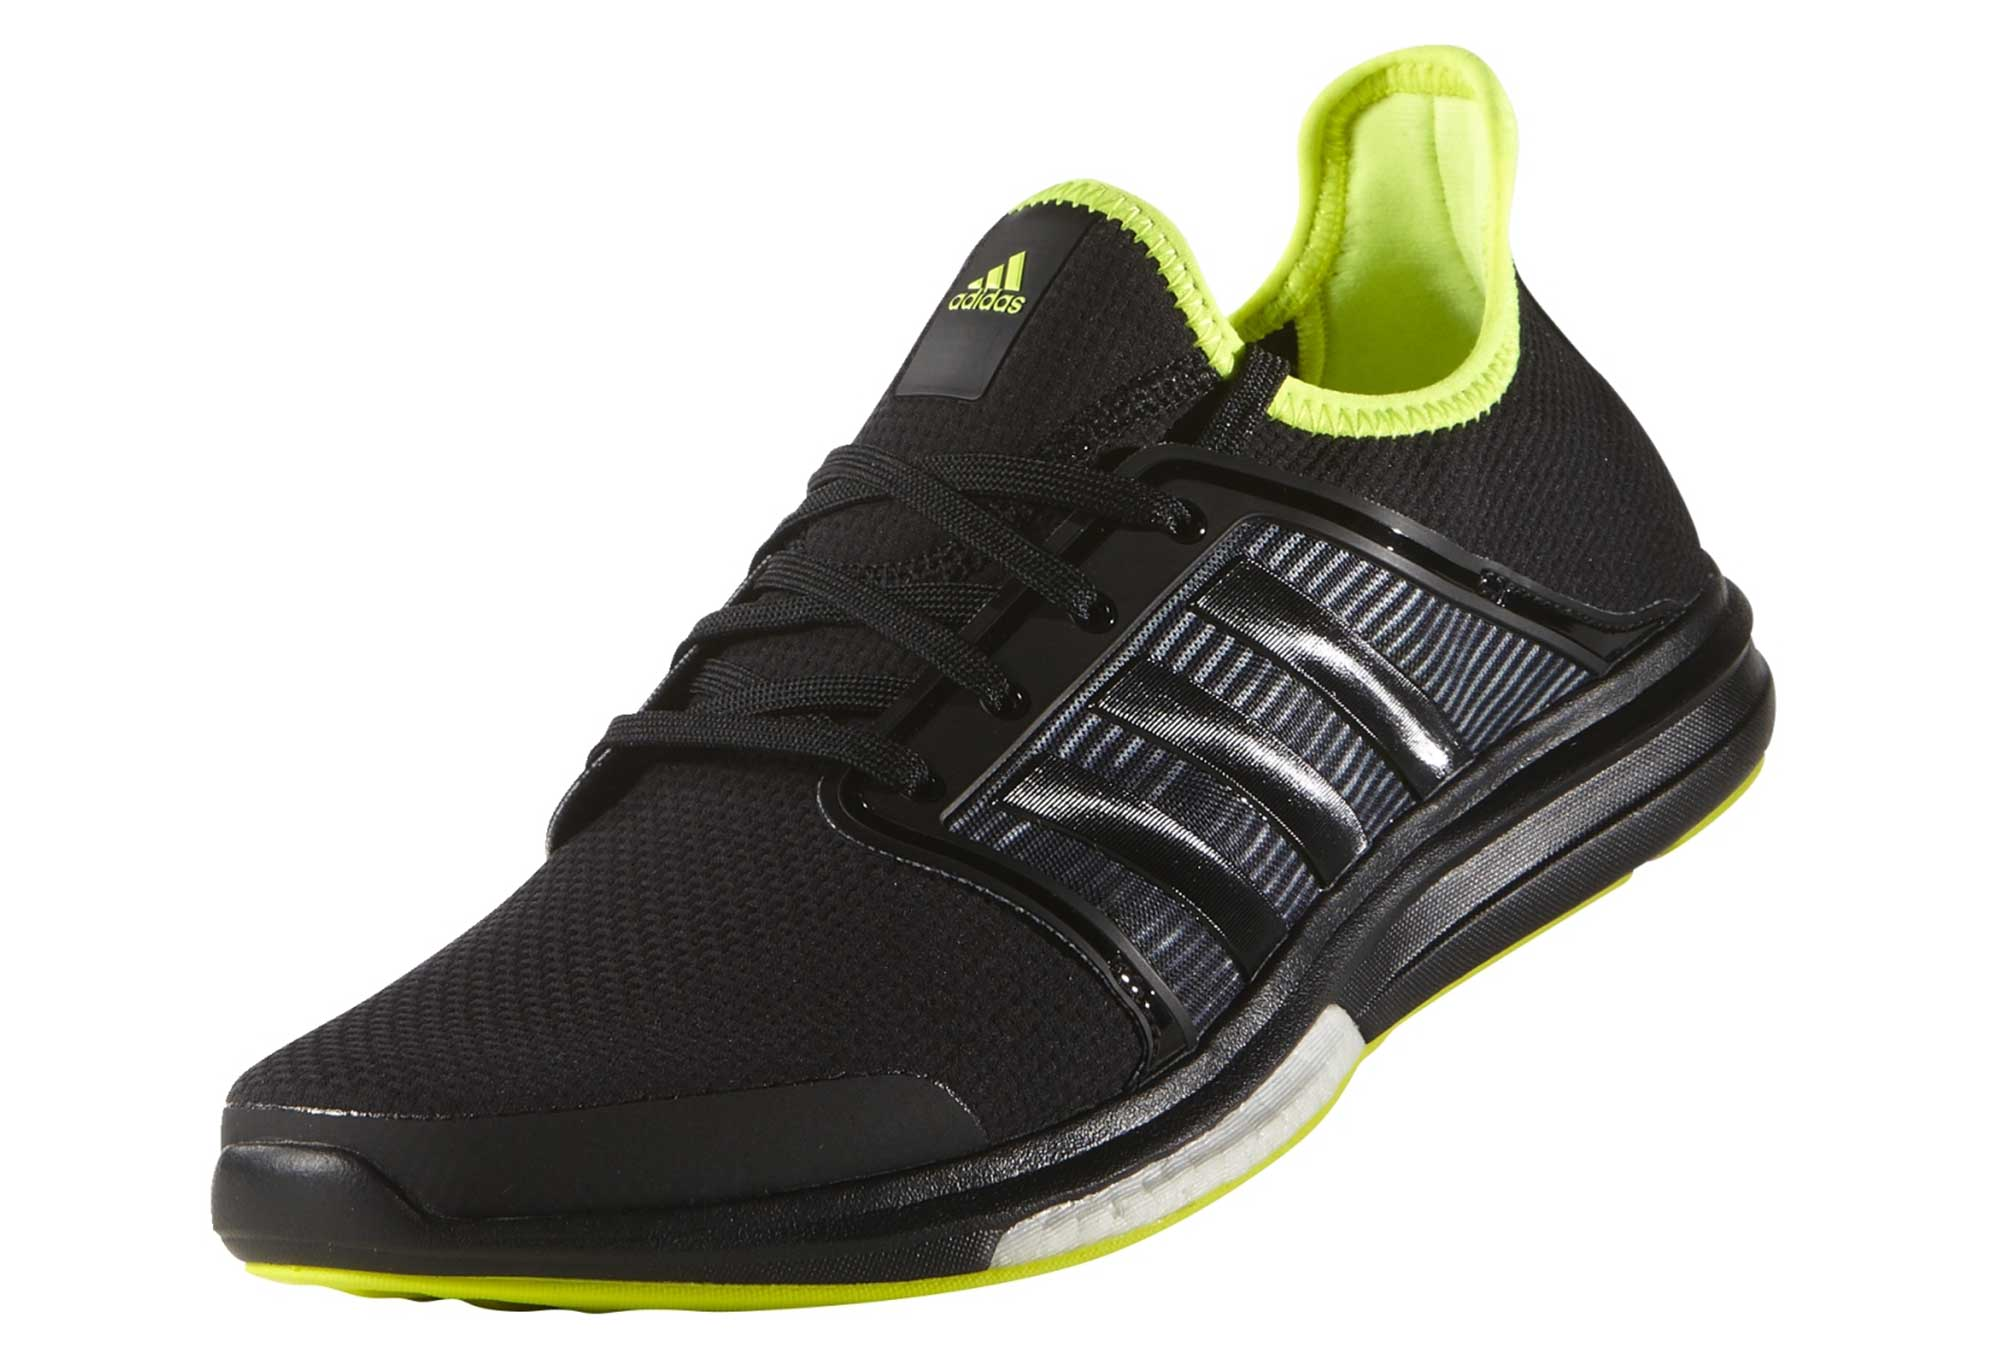 low priced 8f81a 41842 Adidas Climachill Sonic Boost Mens Running Shoes - Black